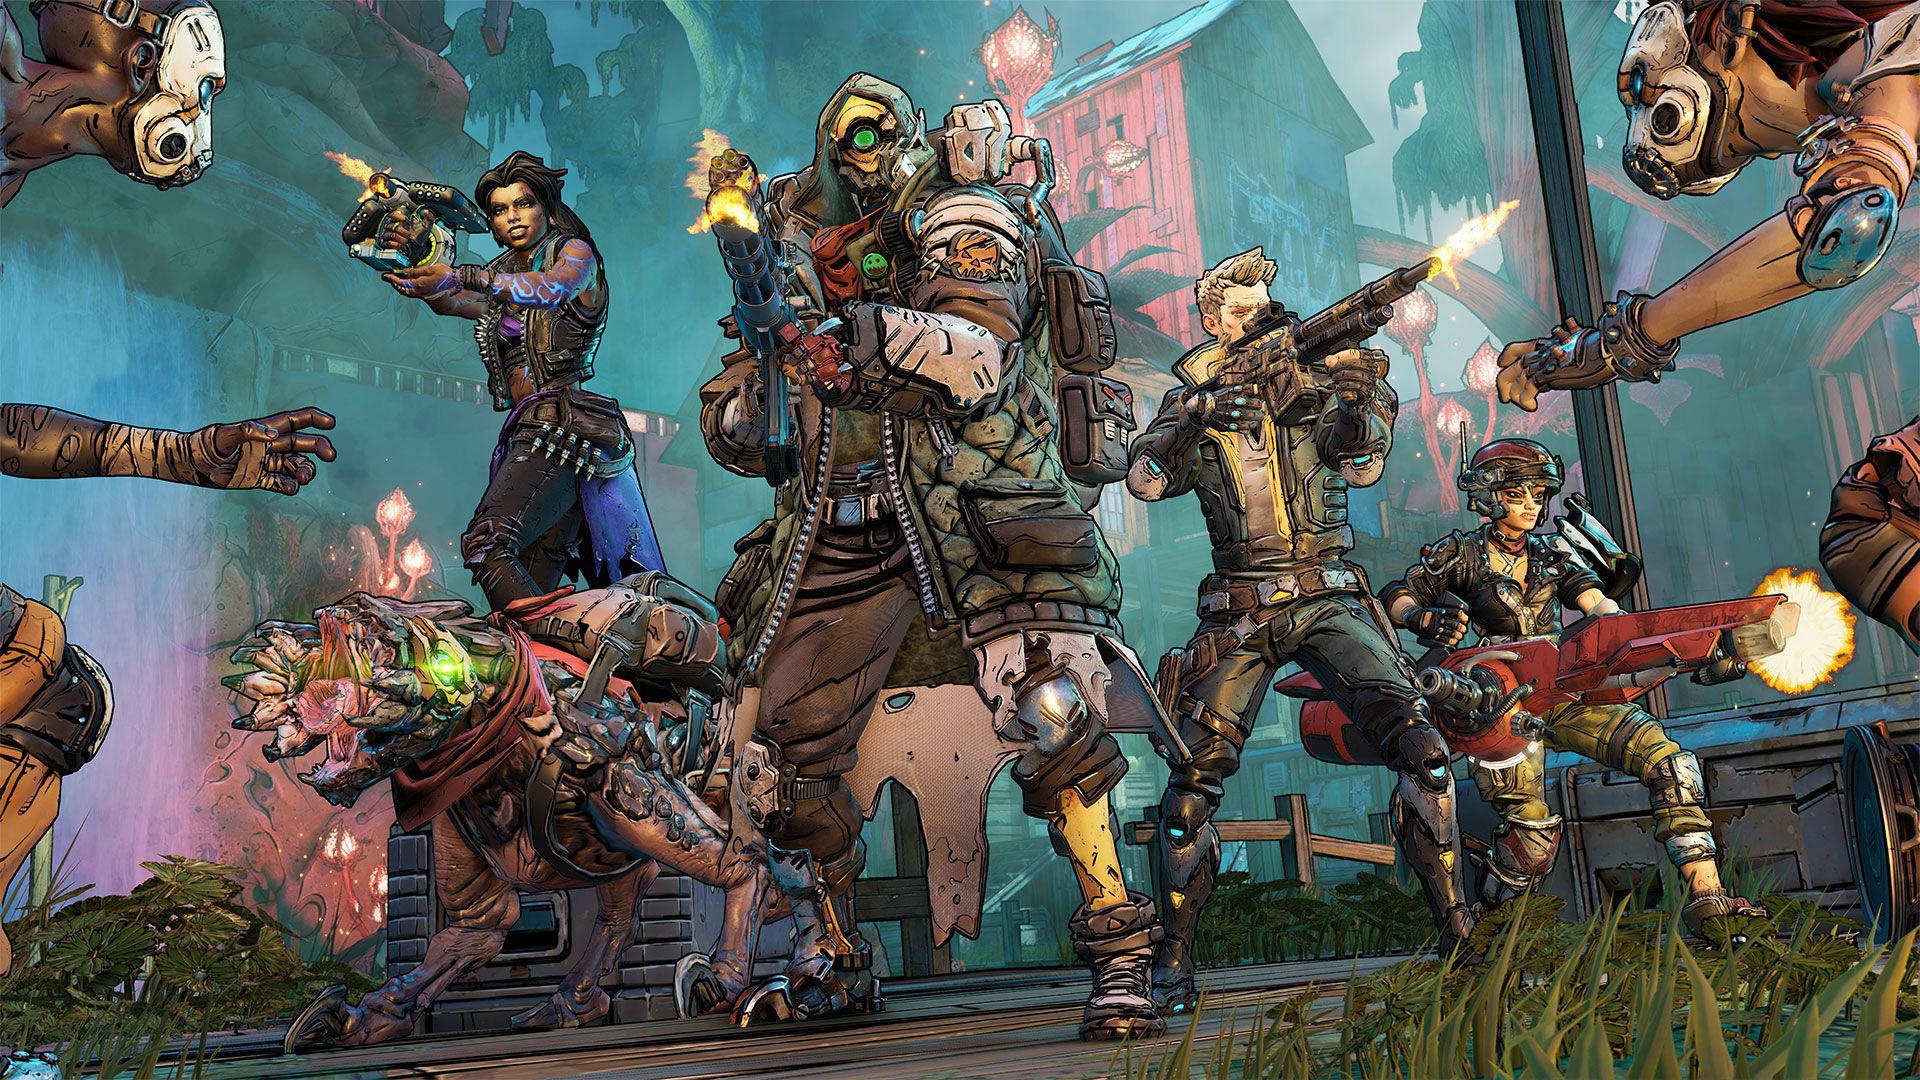 Hands On: How Does Borderlands 3 Run on PS4 Pro?